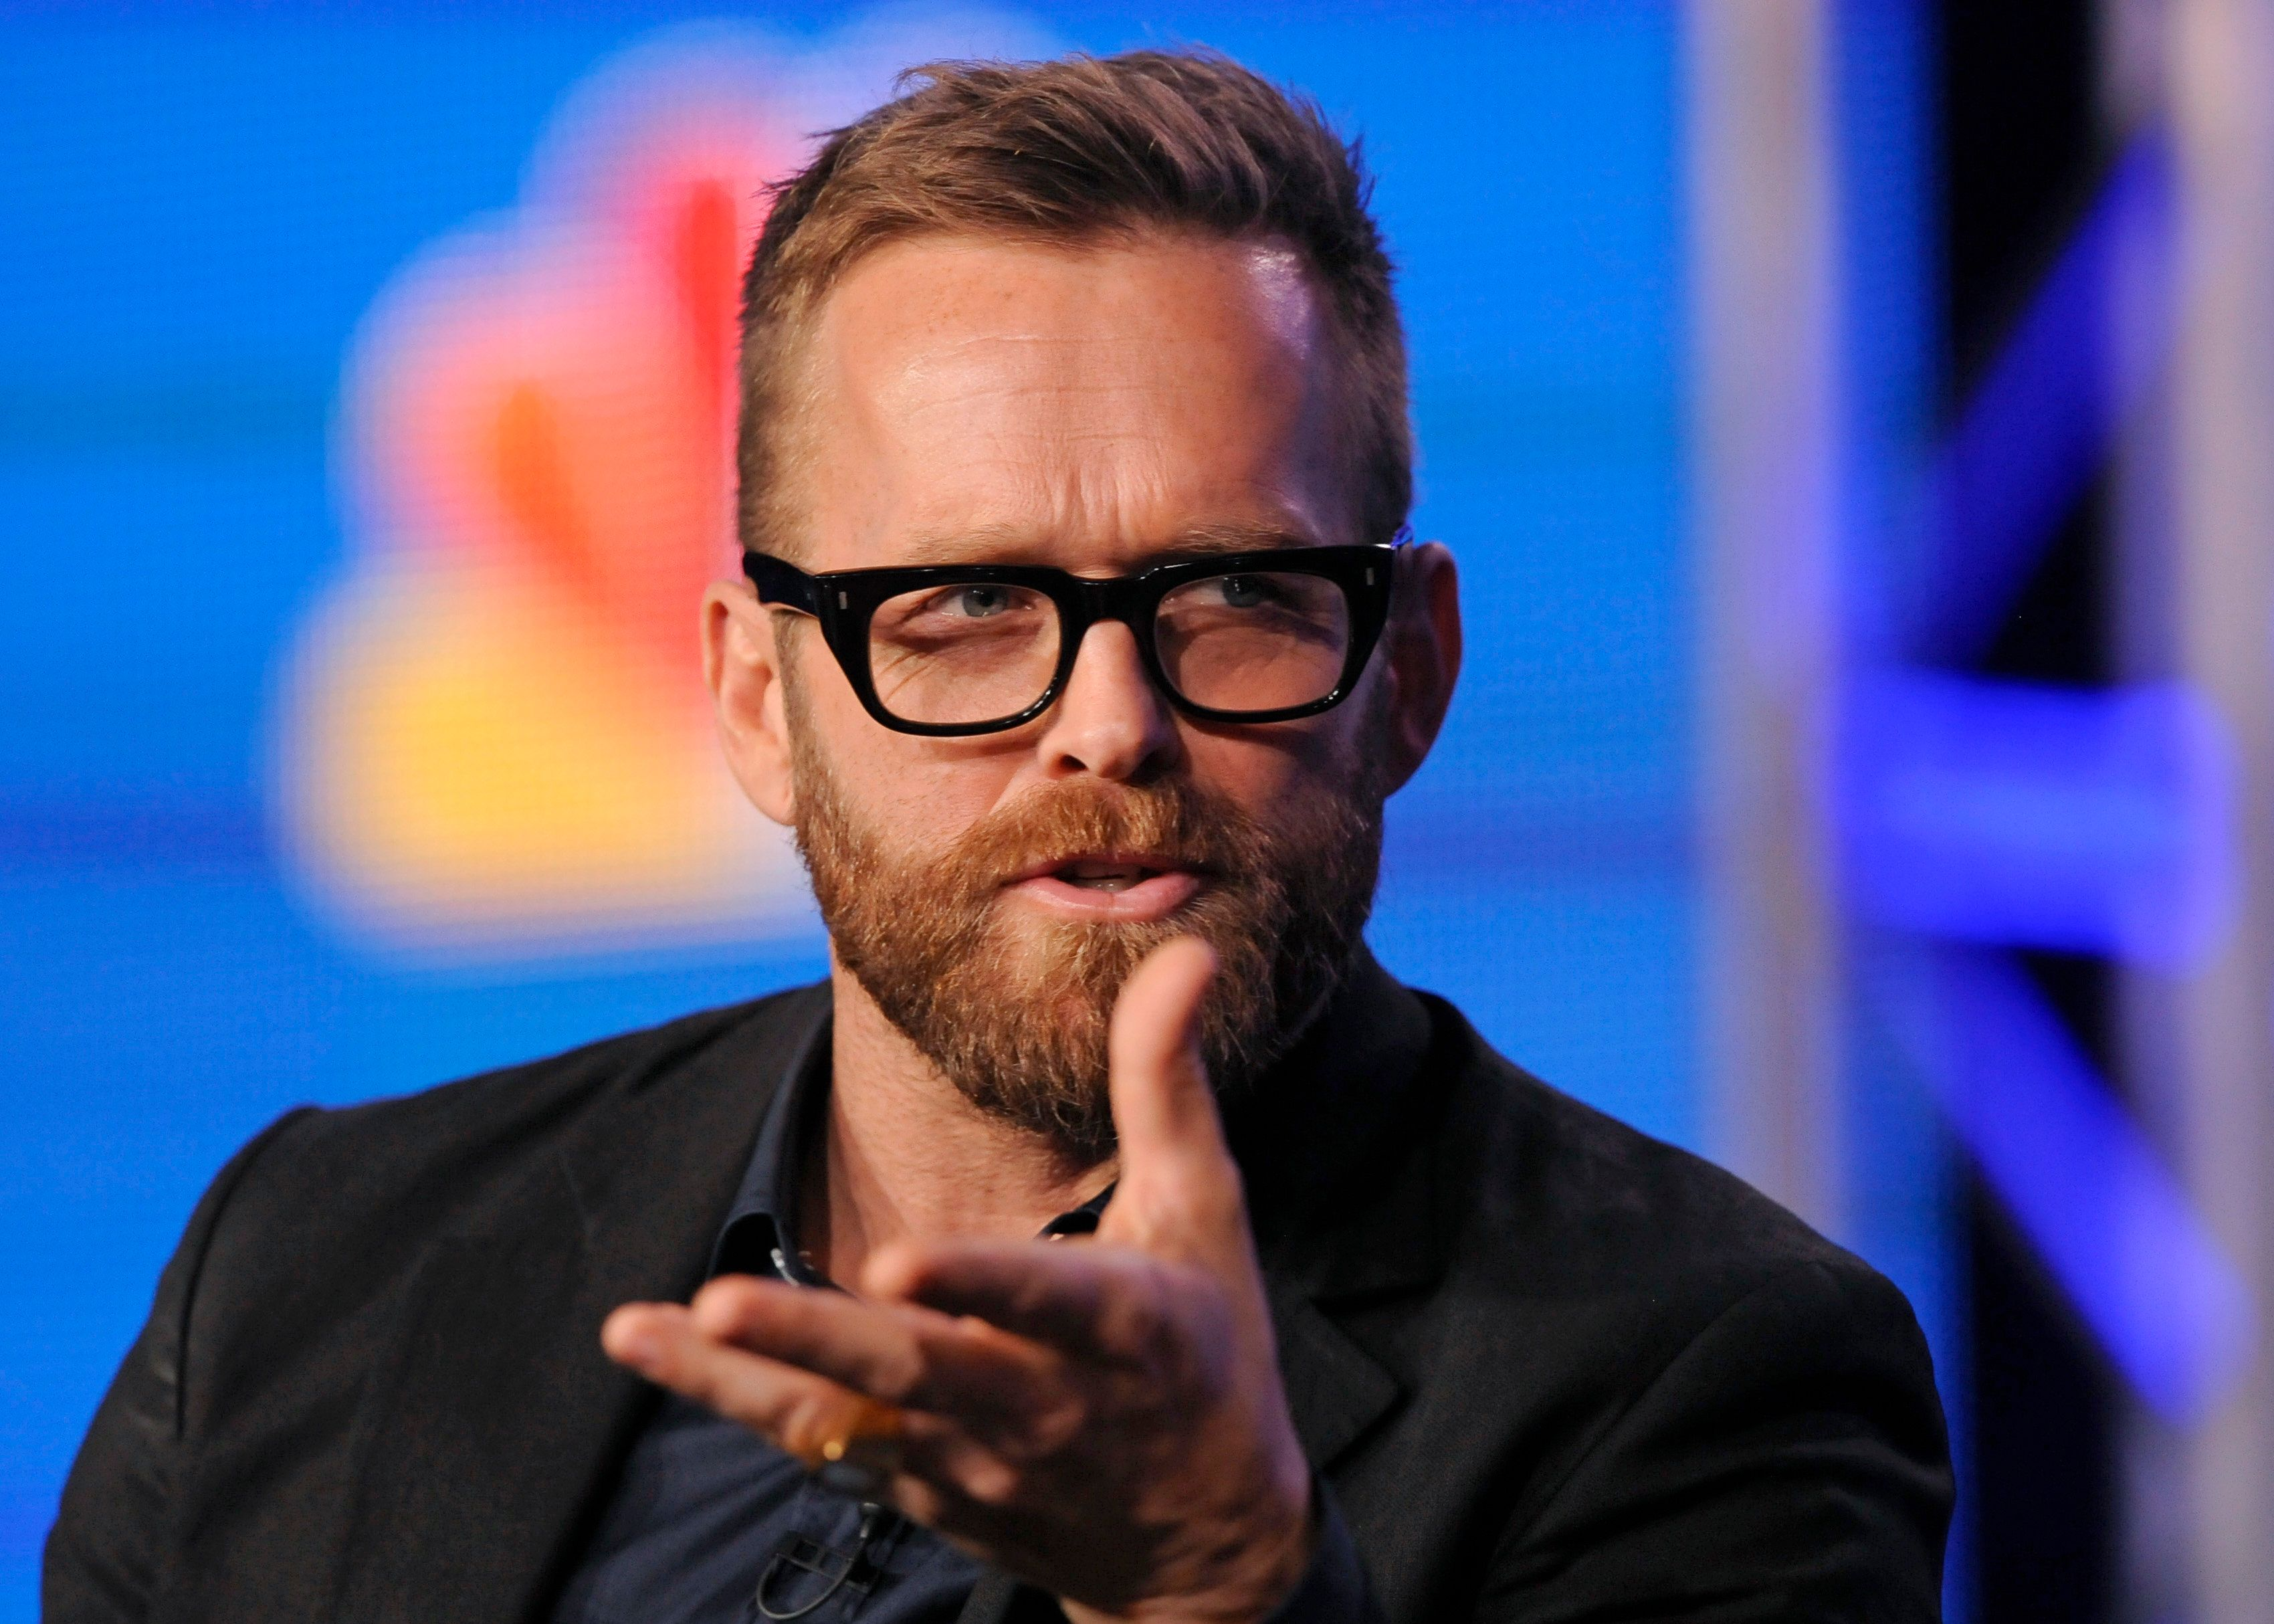 "Trainer Bob Harper takes part in a panel discussion of NBC Universal's show ""The Biggest Loser"" during the 2013 Winter Press Tour for the Television Critics Association in Pasadena, California January 6, 2013. REUTERS/Gus Ruelas (UNITED STATES - Tags: ENTERTAINMENT)"